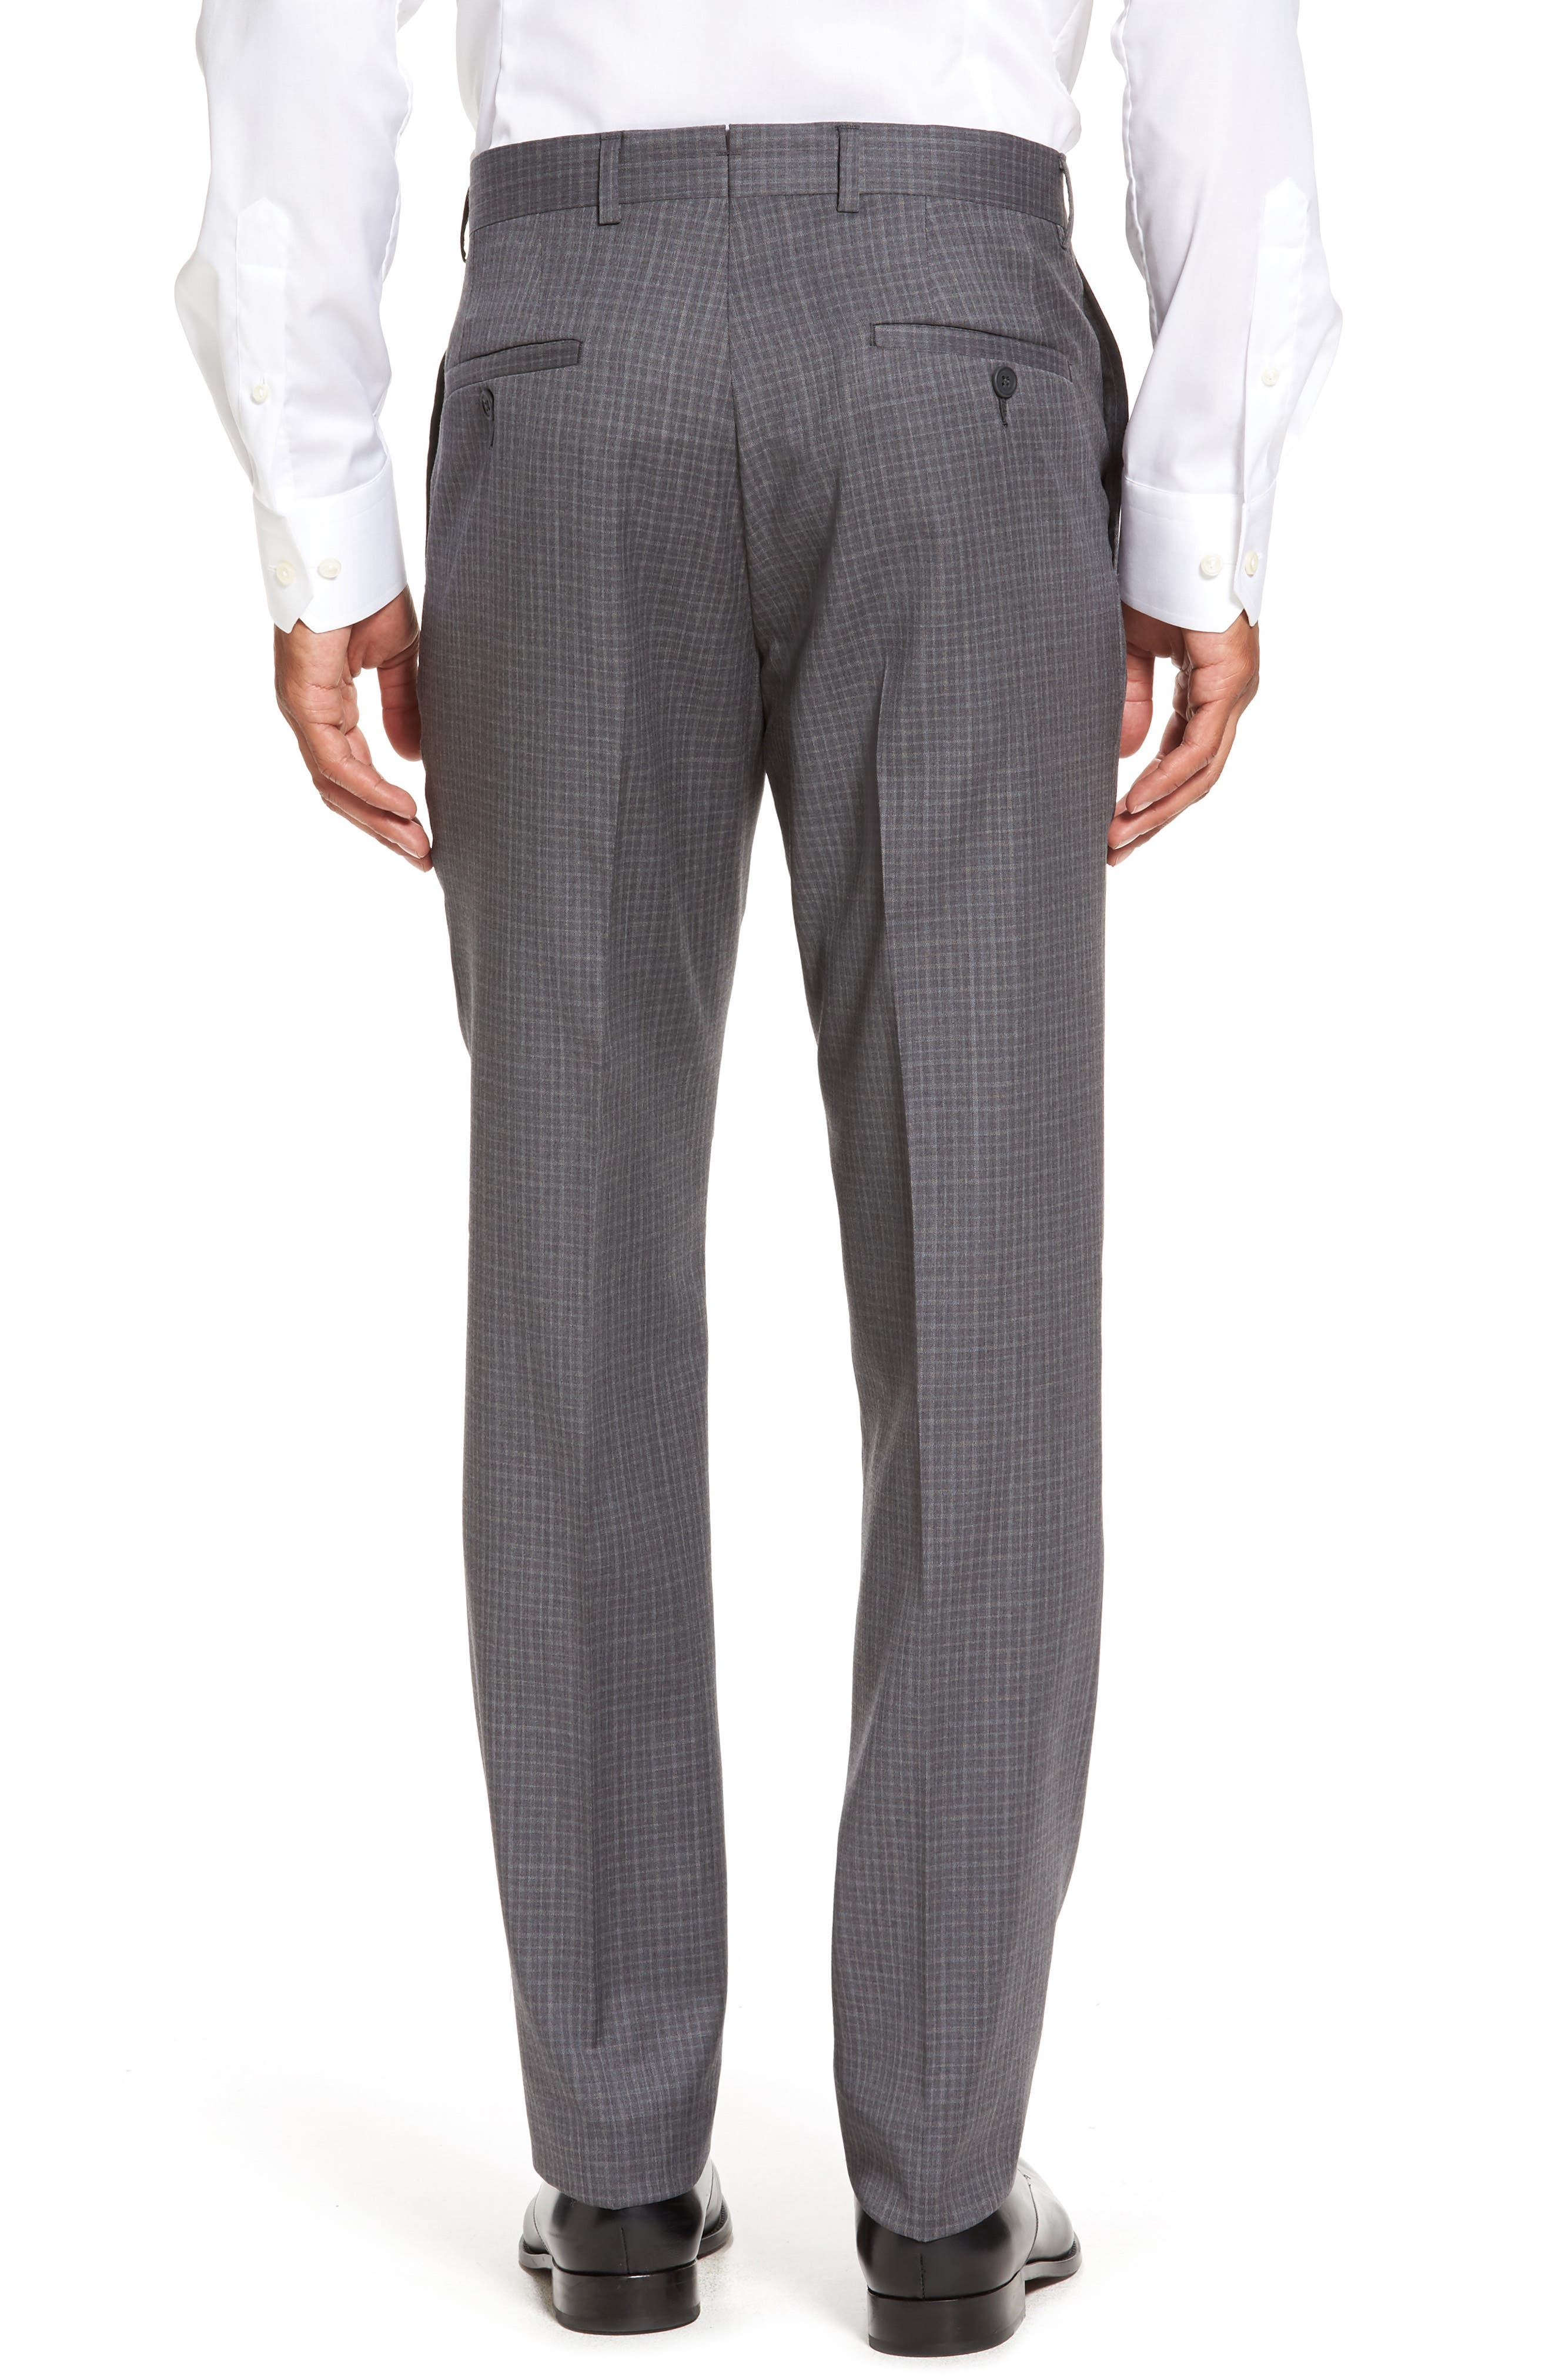 Flat Front Wool Trousers,                             Alternate thumbnail 3, color,                             099